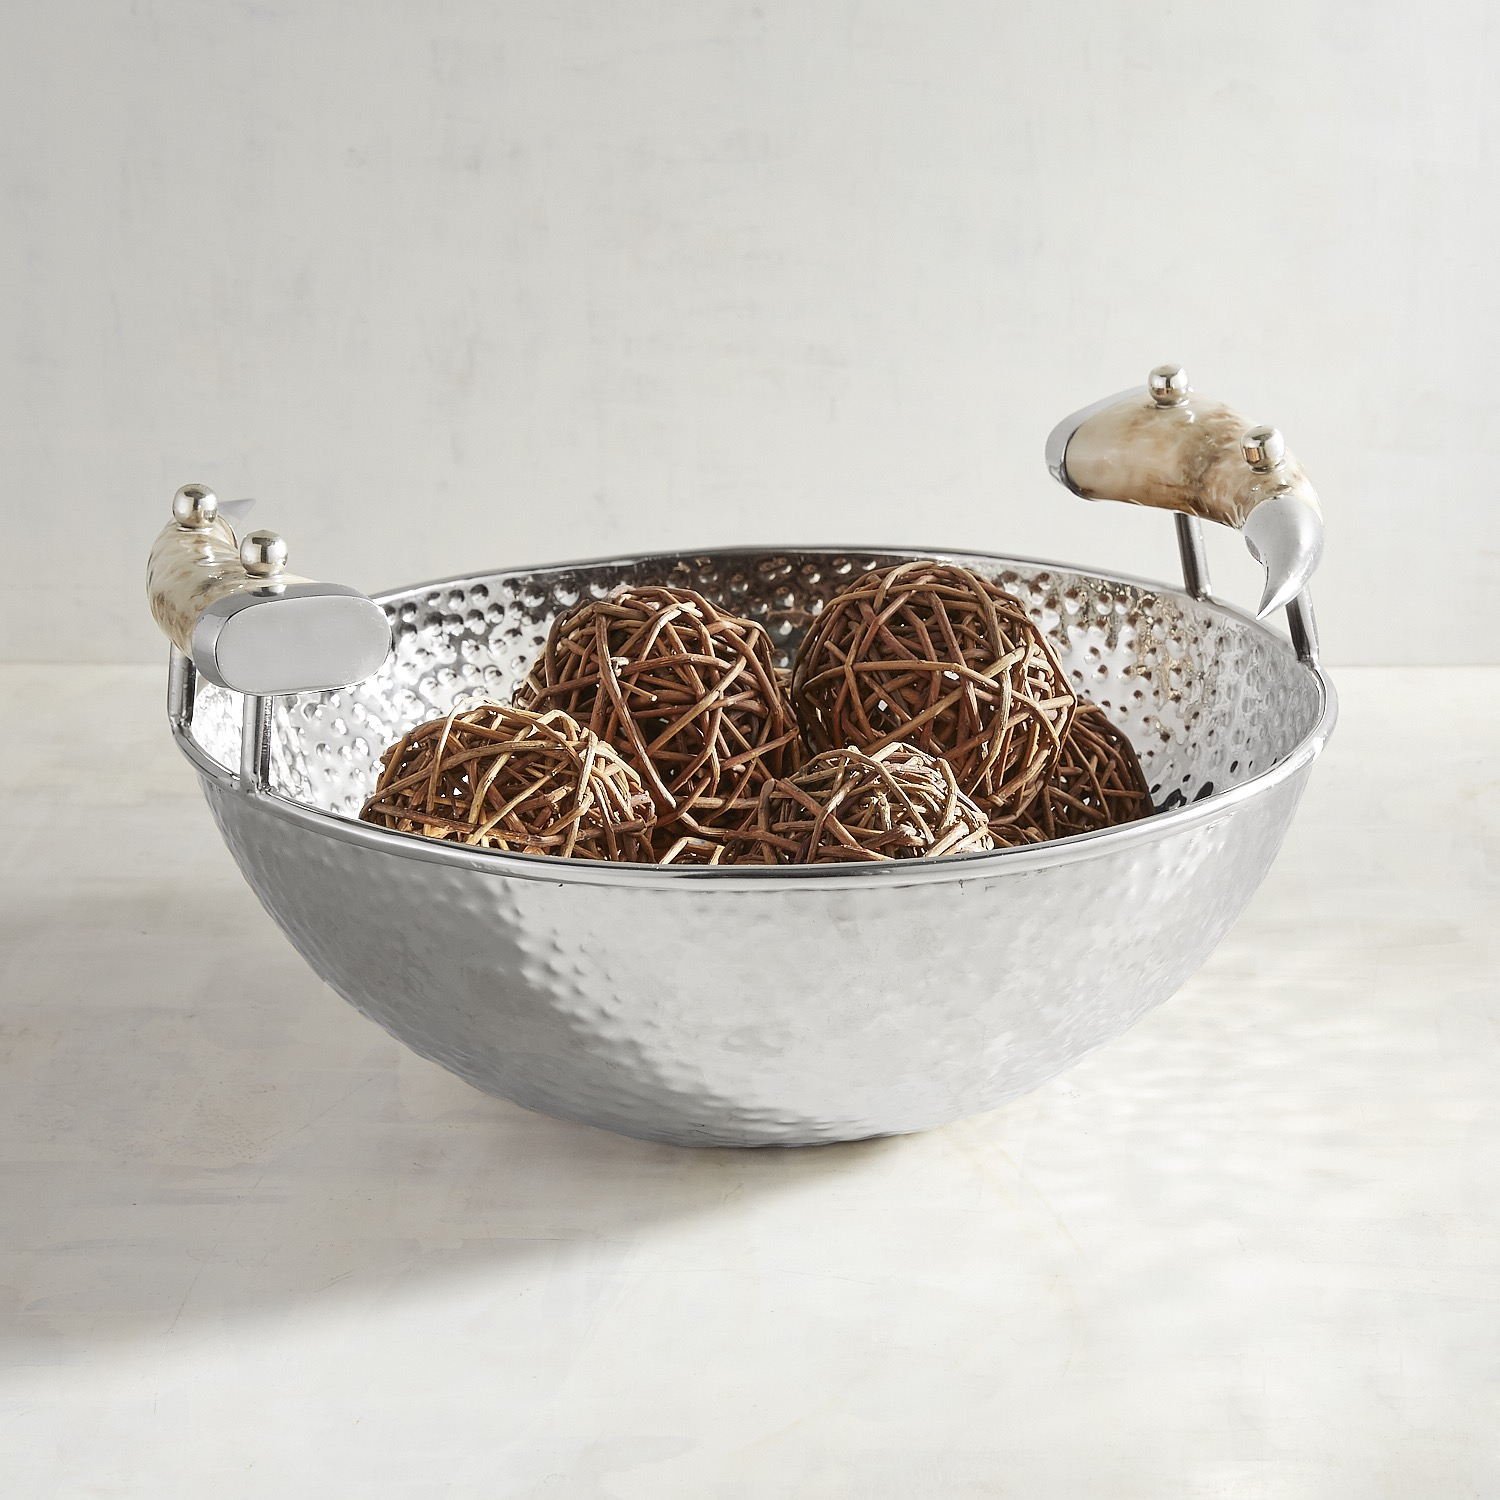 Hammered Metal Decorative Bowl with Handles